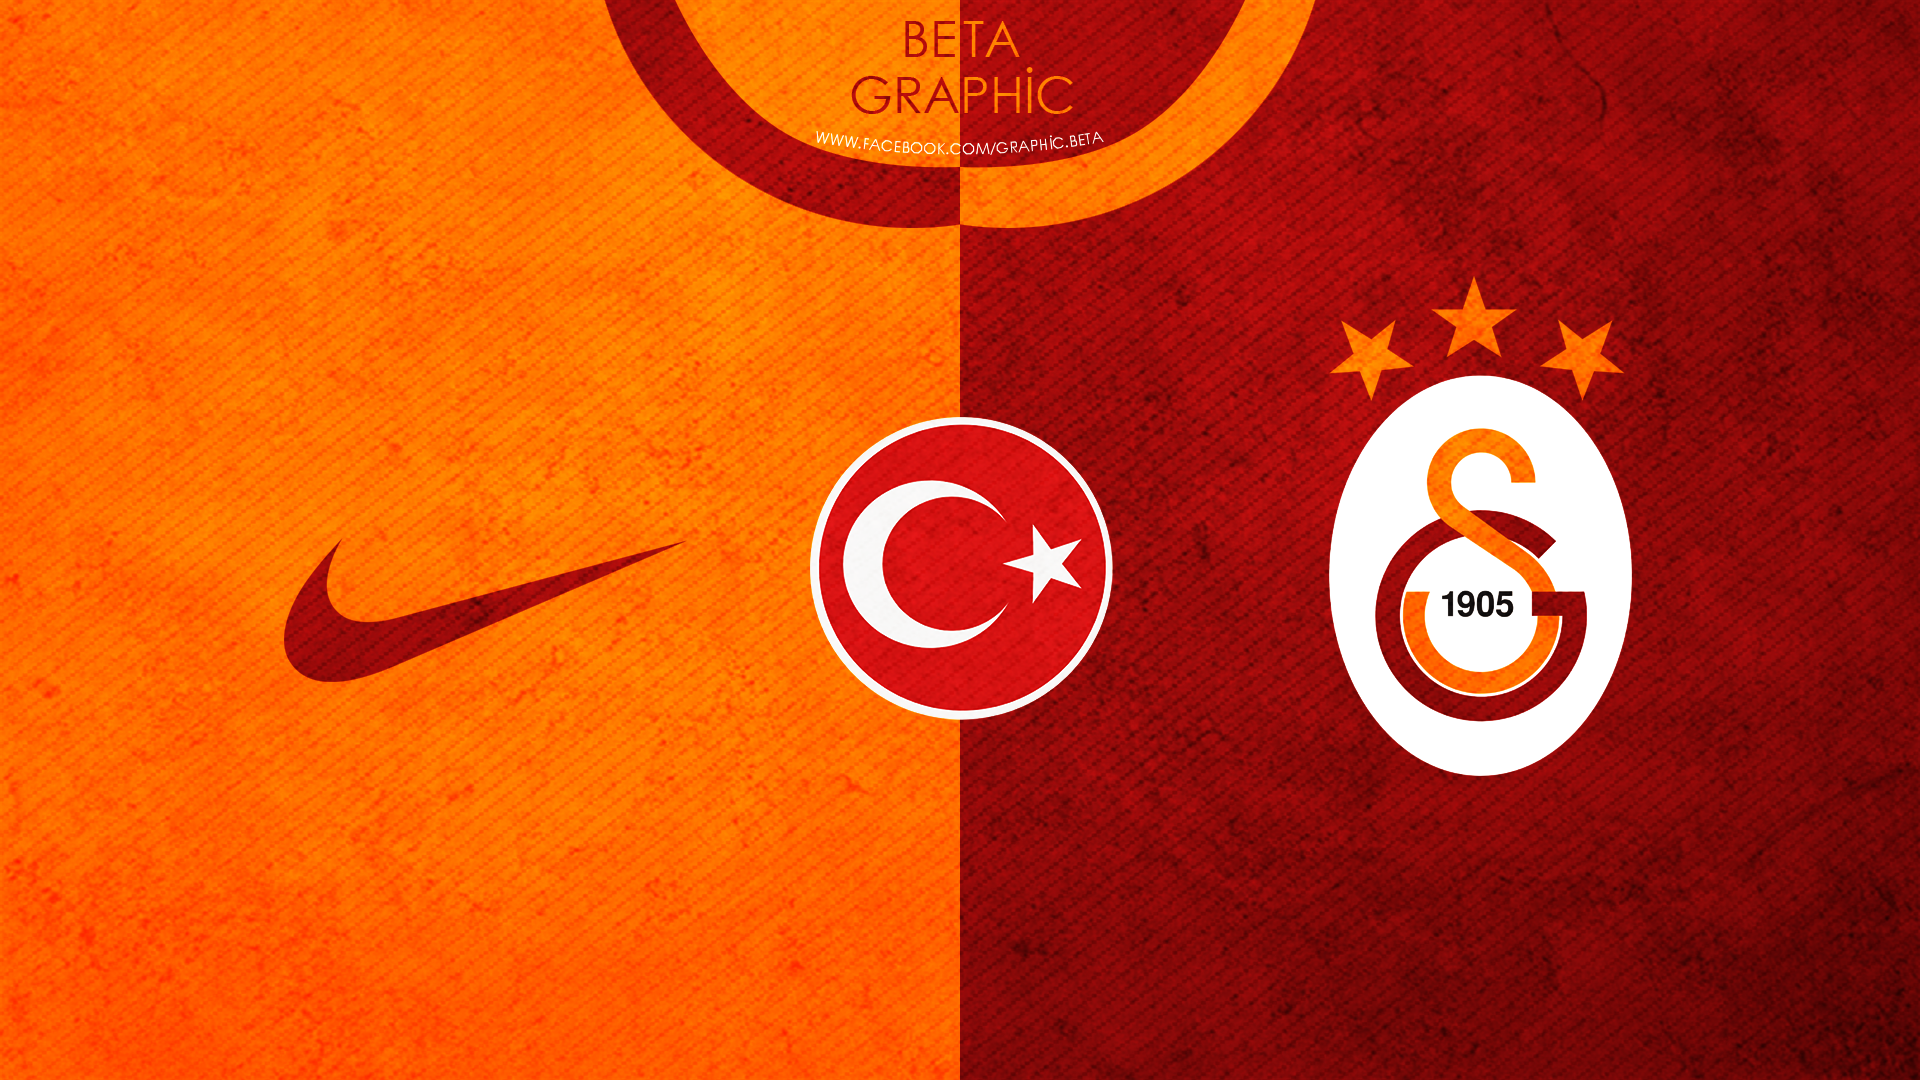 Galatasaray Forma Wallpaper 2014 2015 By Betagrphc On